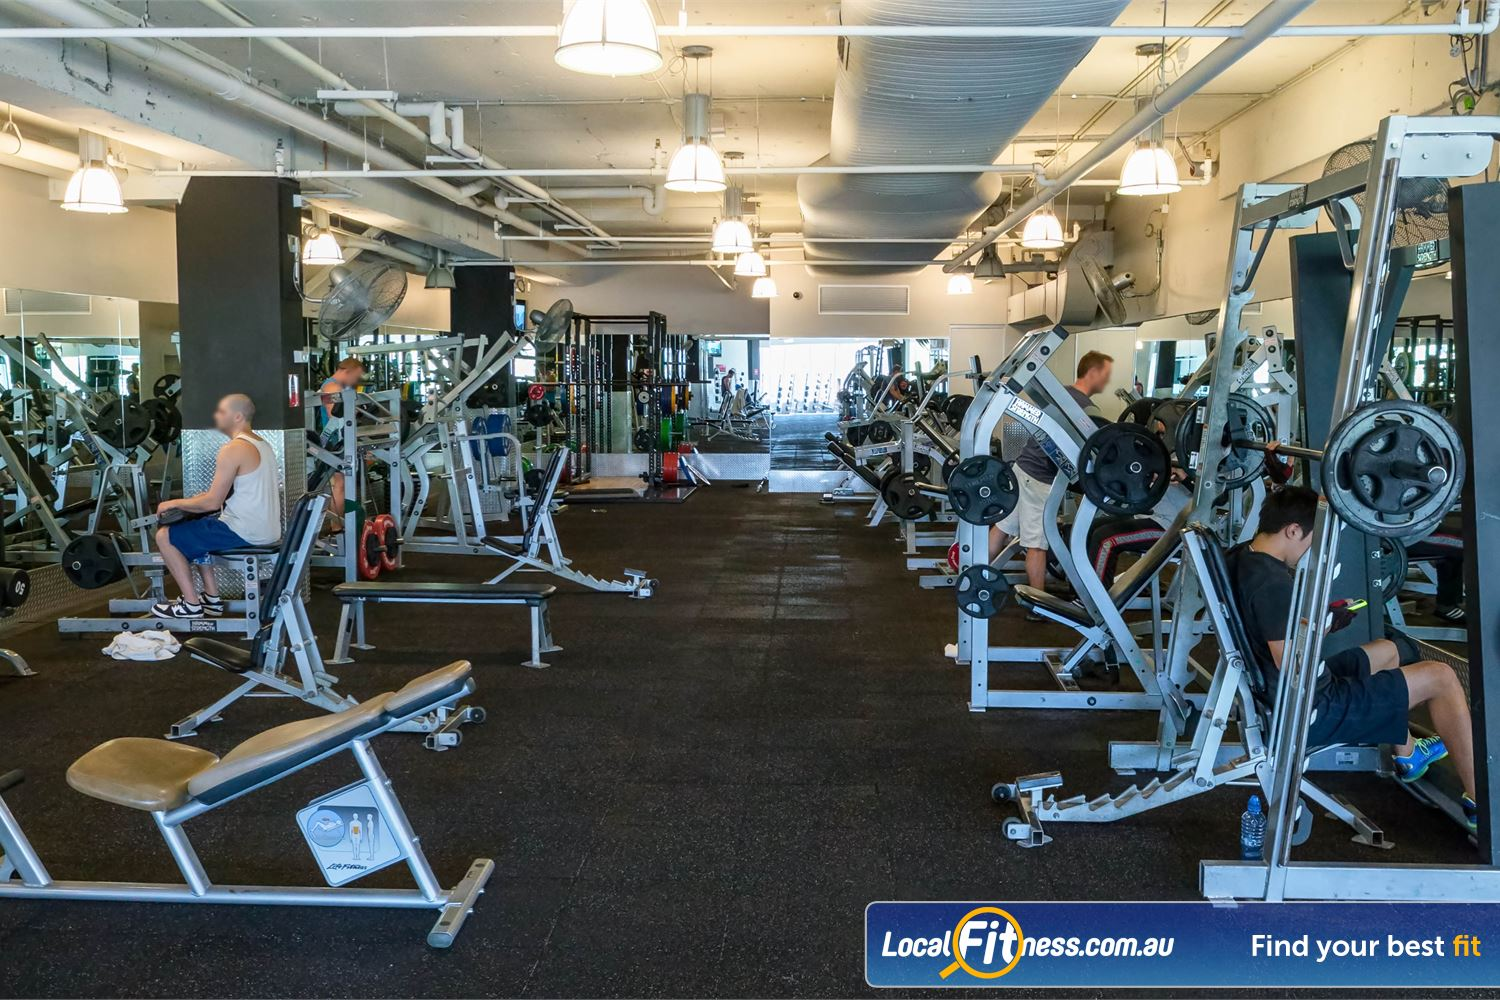 Fitness First Platinum Kings Cross Near Strawberry Hills Fully equipped free-weights area with state of the art Hammer Strength equipment.